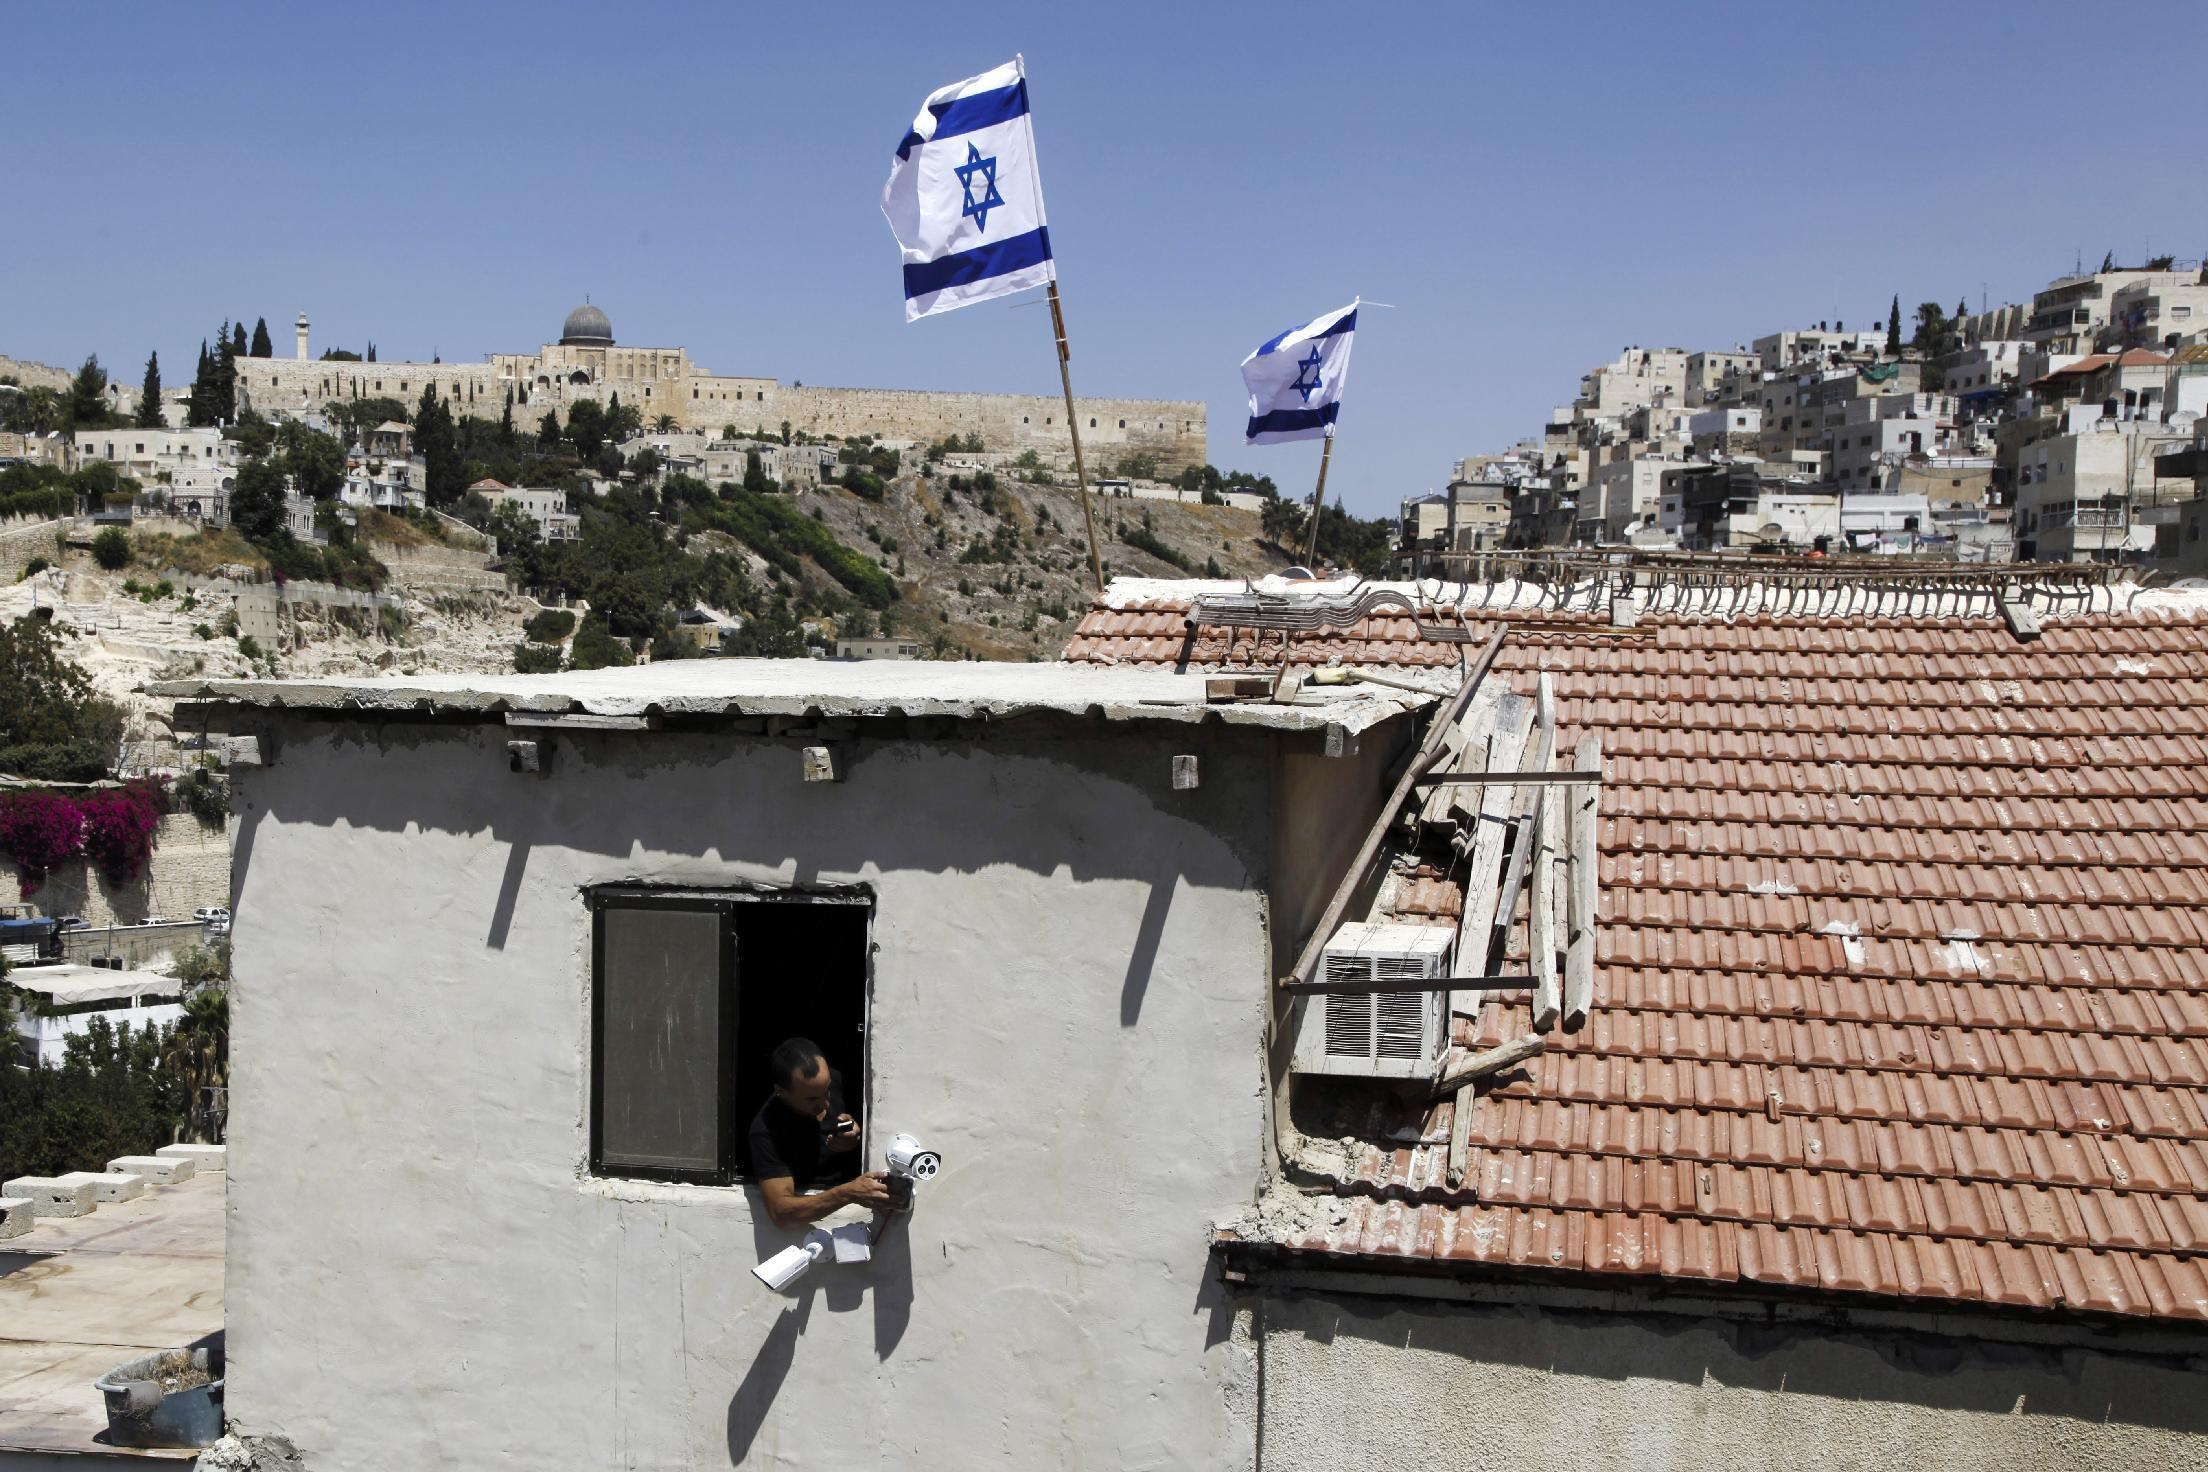 Jewish settlers take over homes in Arab part of Jerusalem